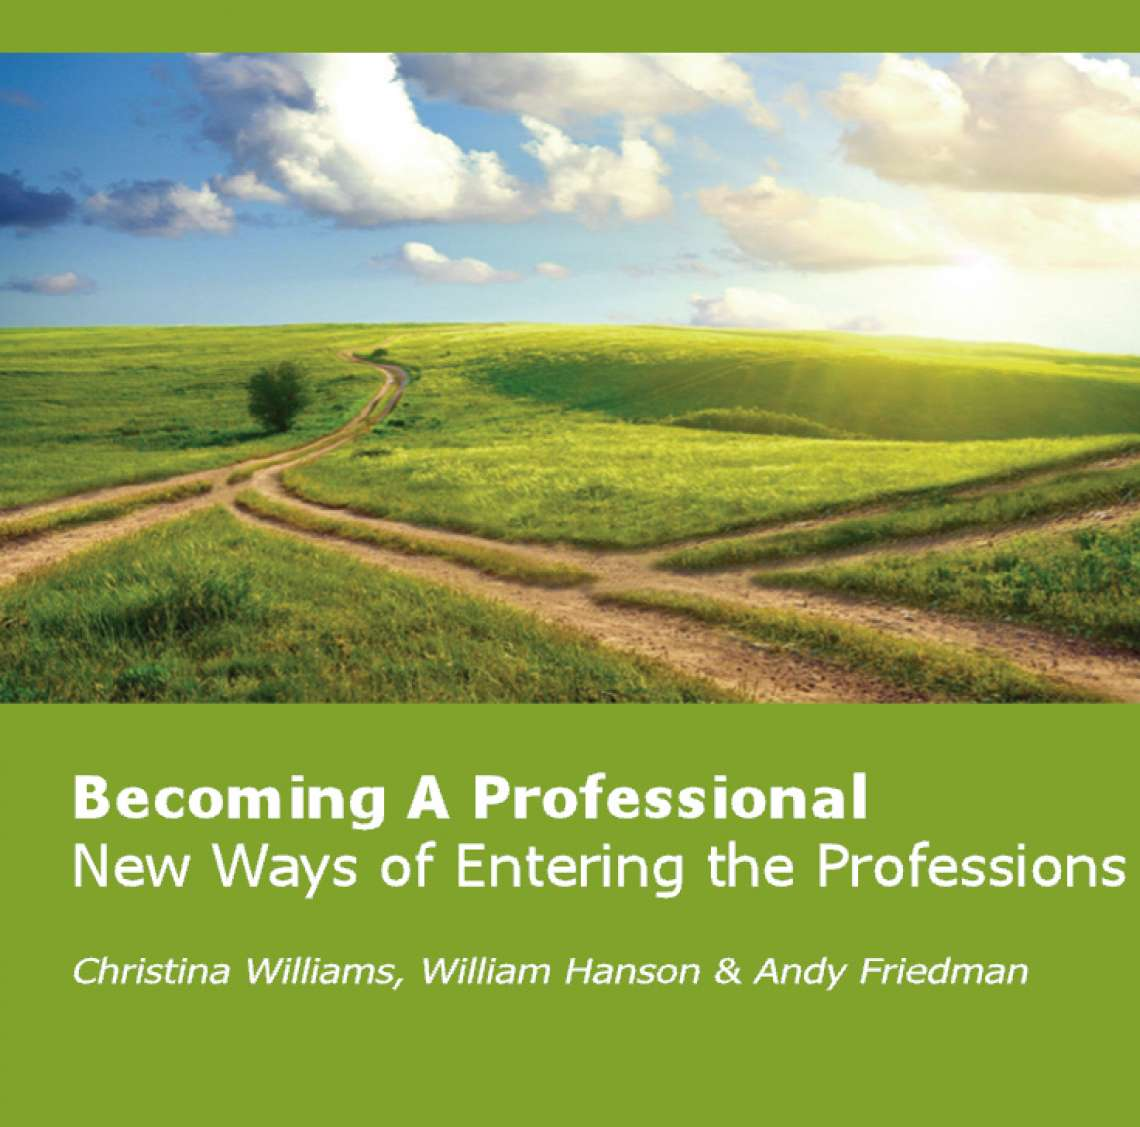 Becoming A Professional: New Ways of Entering the Professions (2012) [Digital]